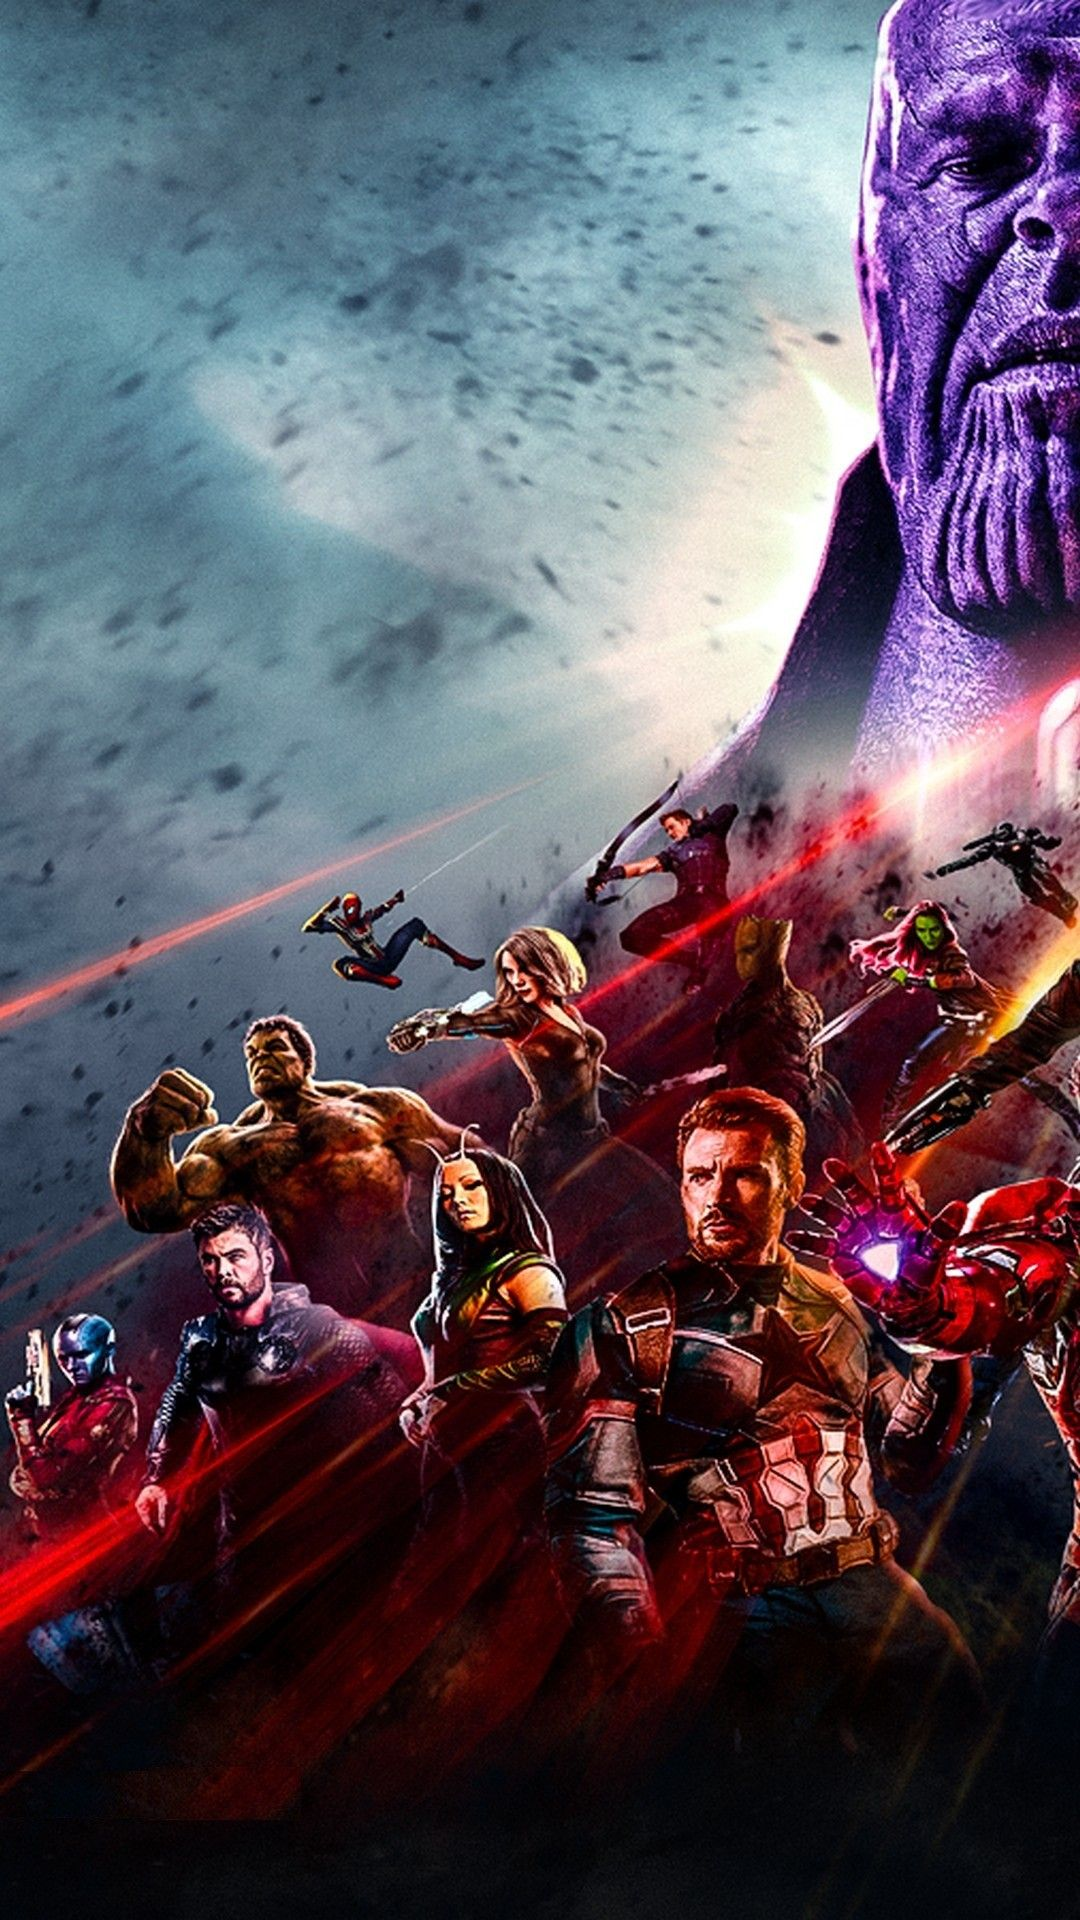 Avengers Infinity War Wallpaper Iphone Best Iphone Wallpaper Avengers Images Avengers Pictures Avengers Infinity War